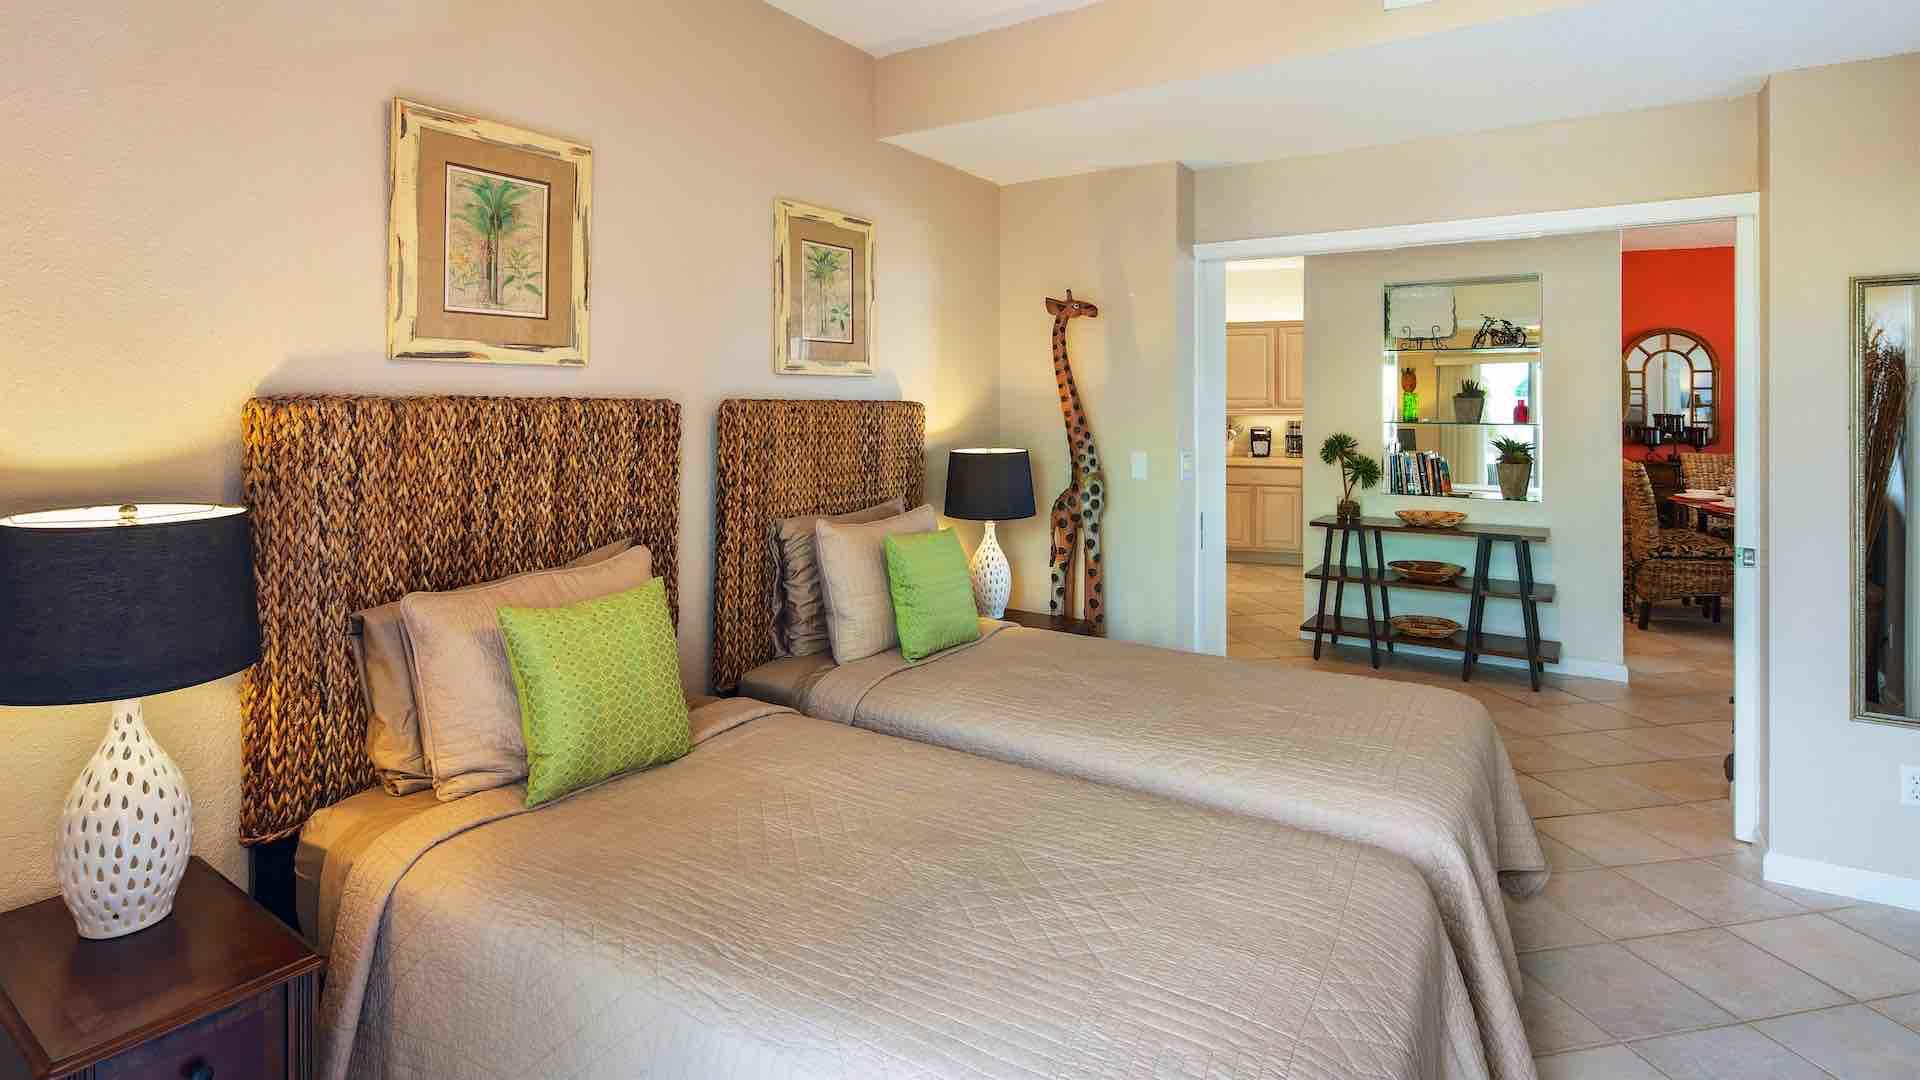 The second bedroom has two twin beds that can convert to a King upon request...